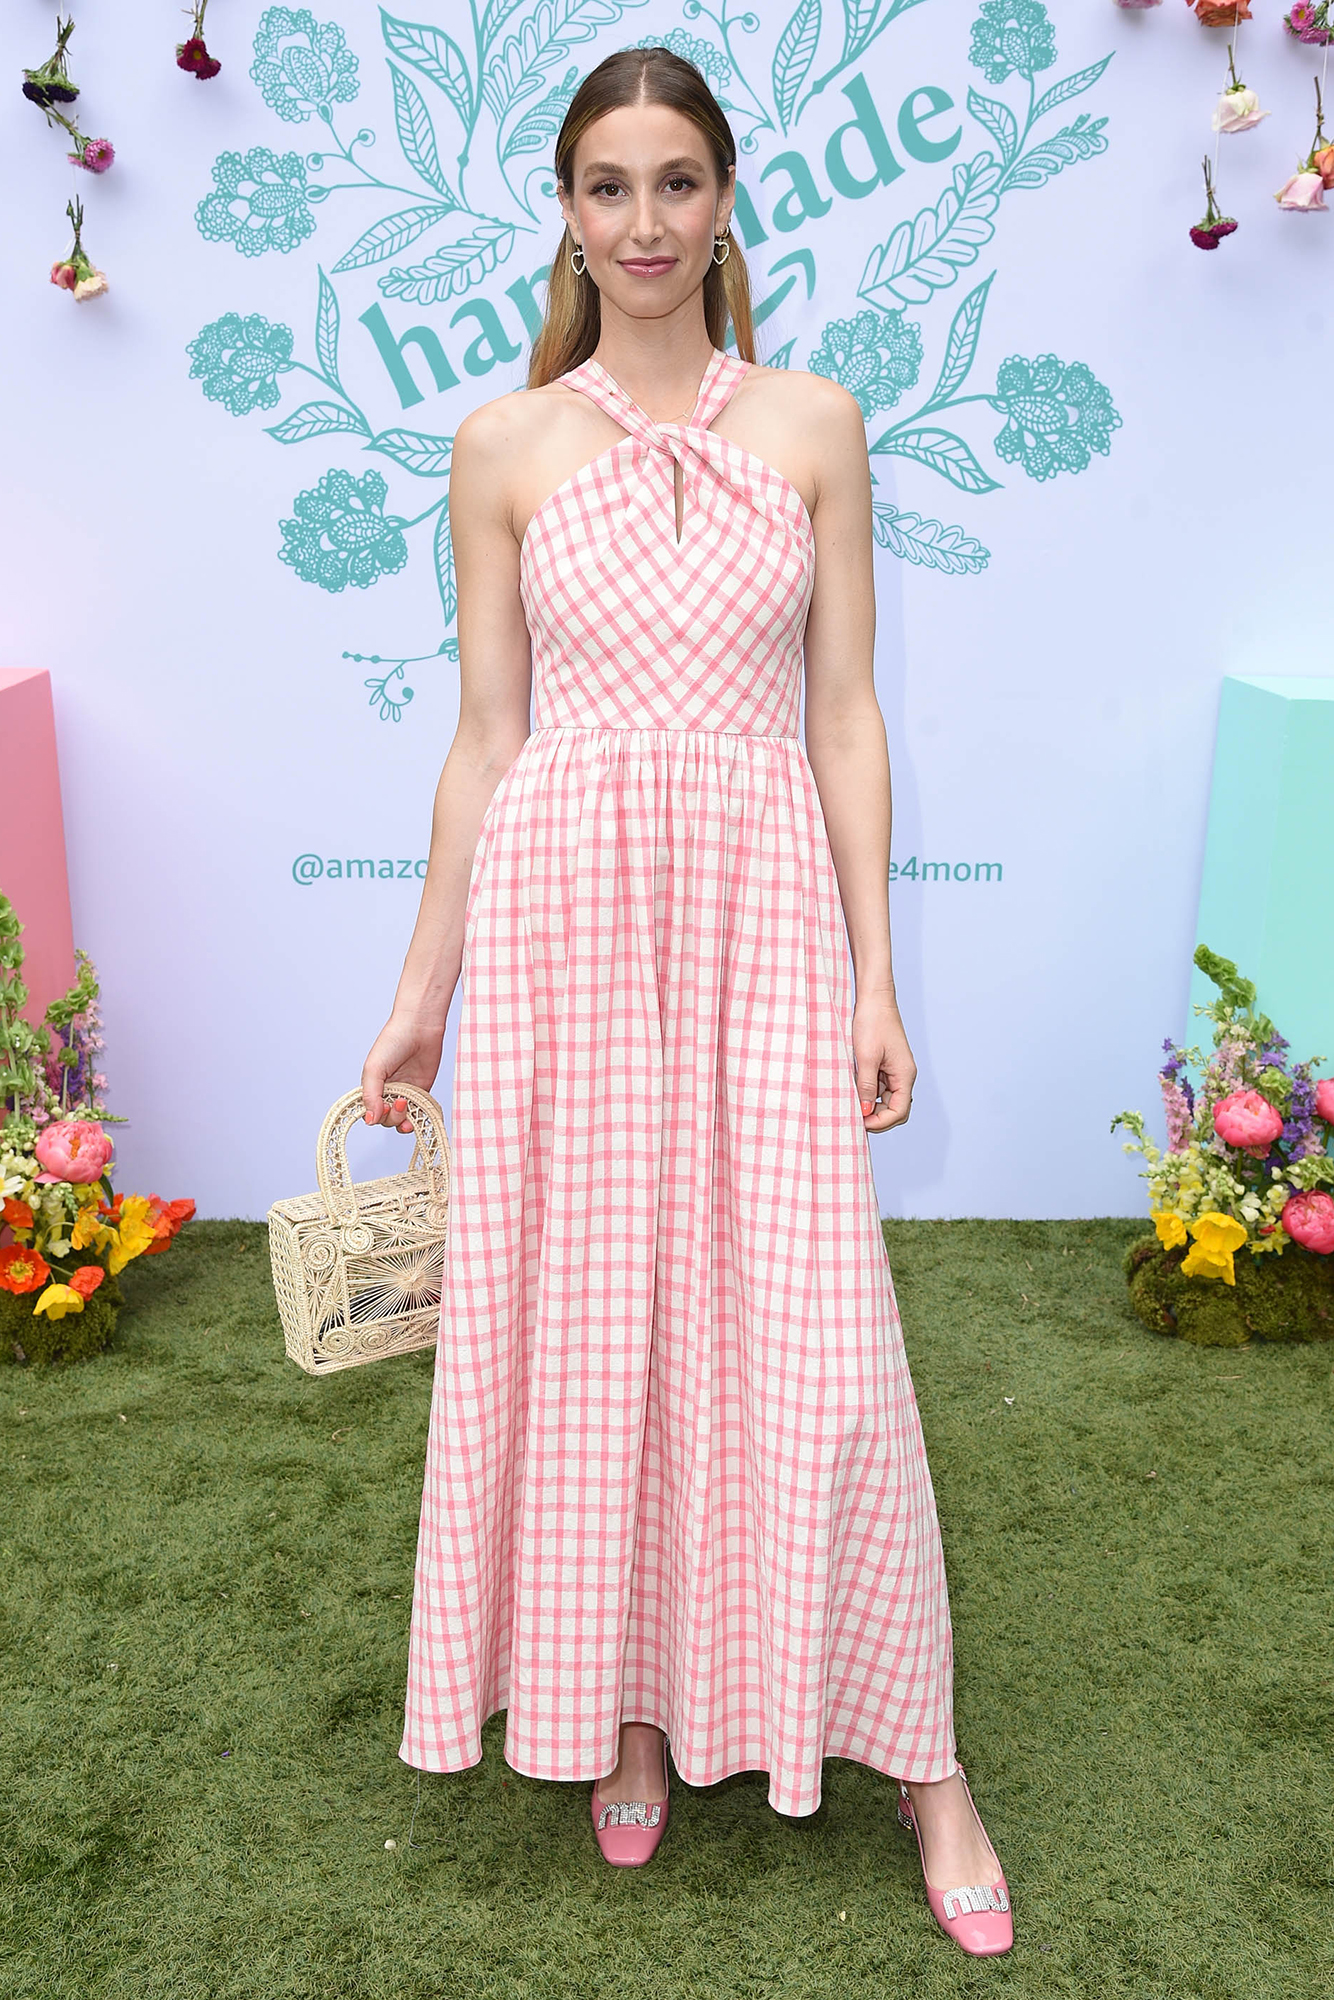 Whitney Port and 'Hills' Costars Share Parenting Advice - Whitney Port attends the Amazon Handmade event at Lombardi House on April 28, 2019.